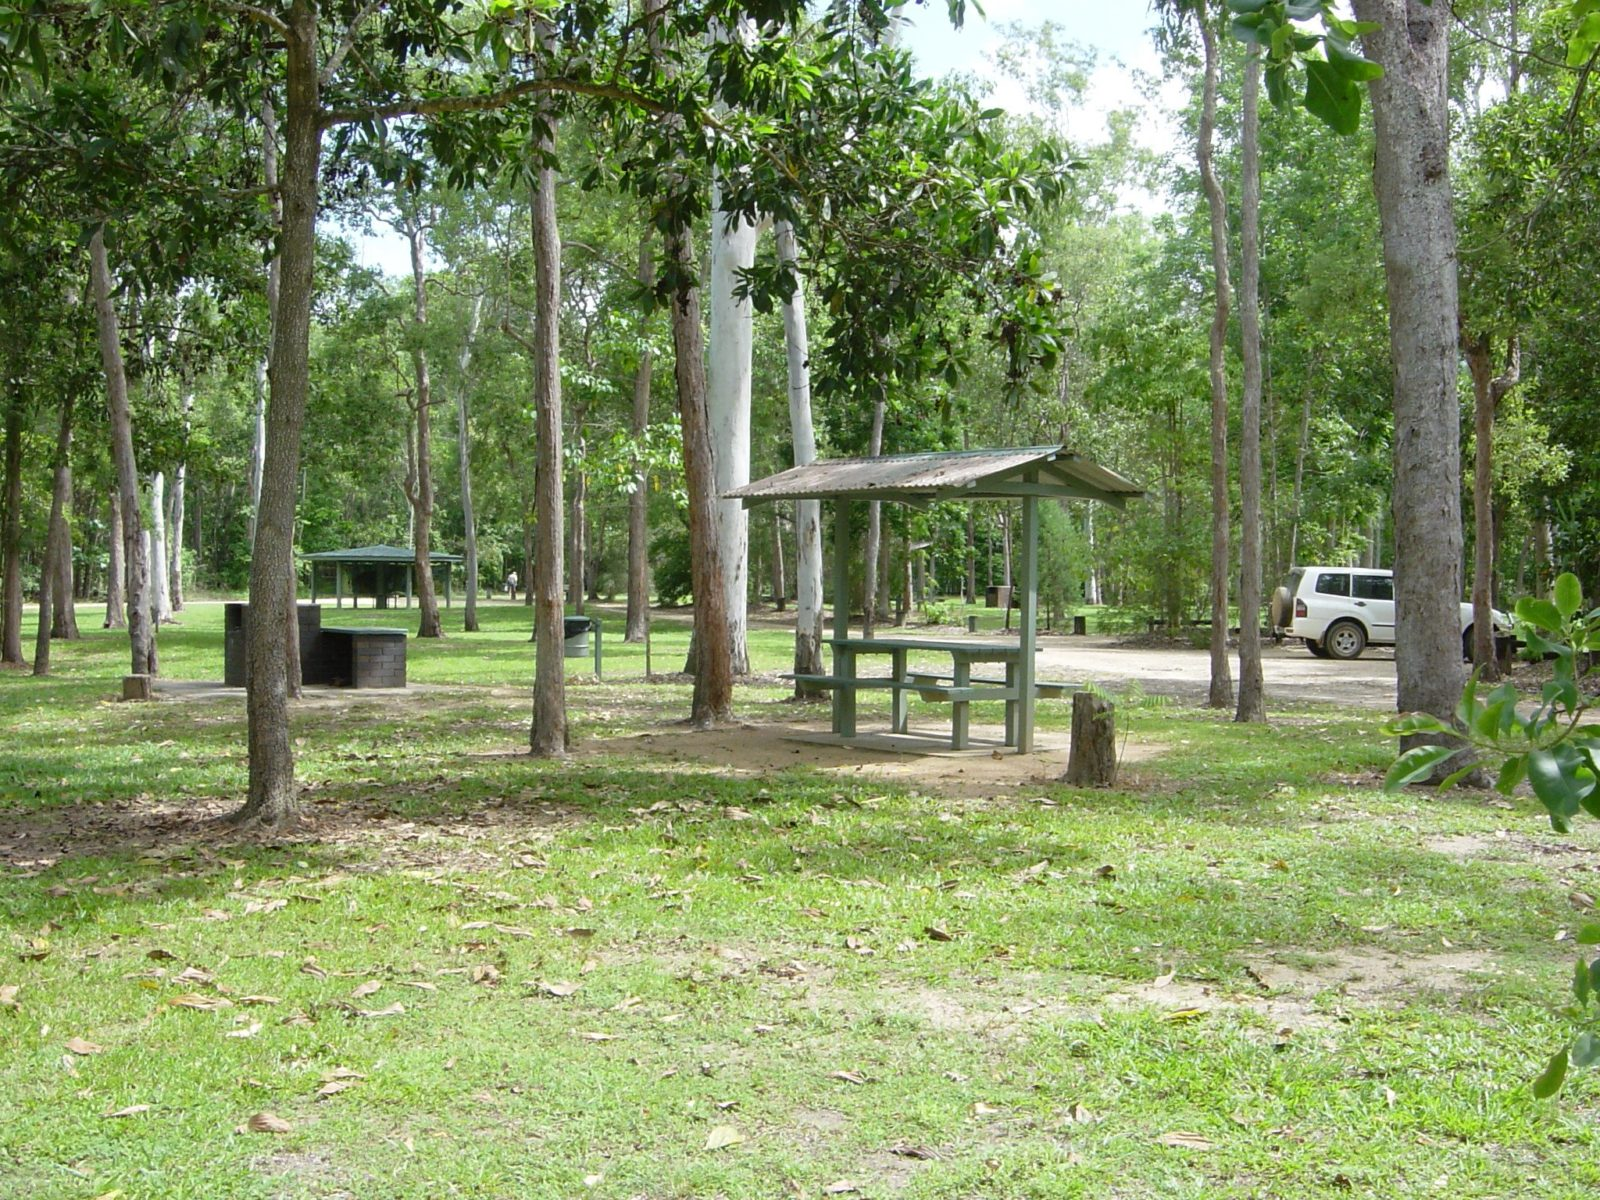 Barbeques and picnic shelters at day use area near camping area.